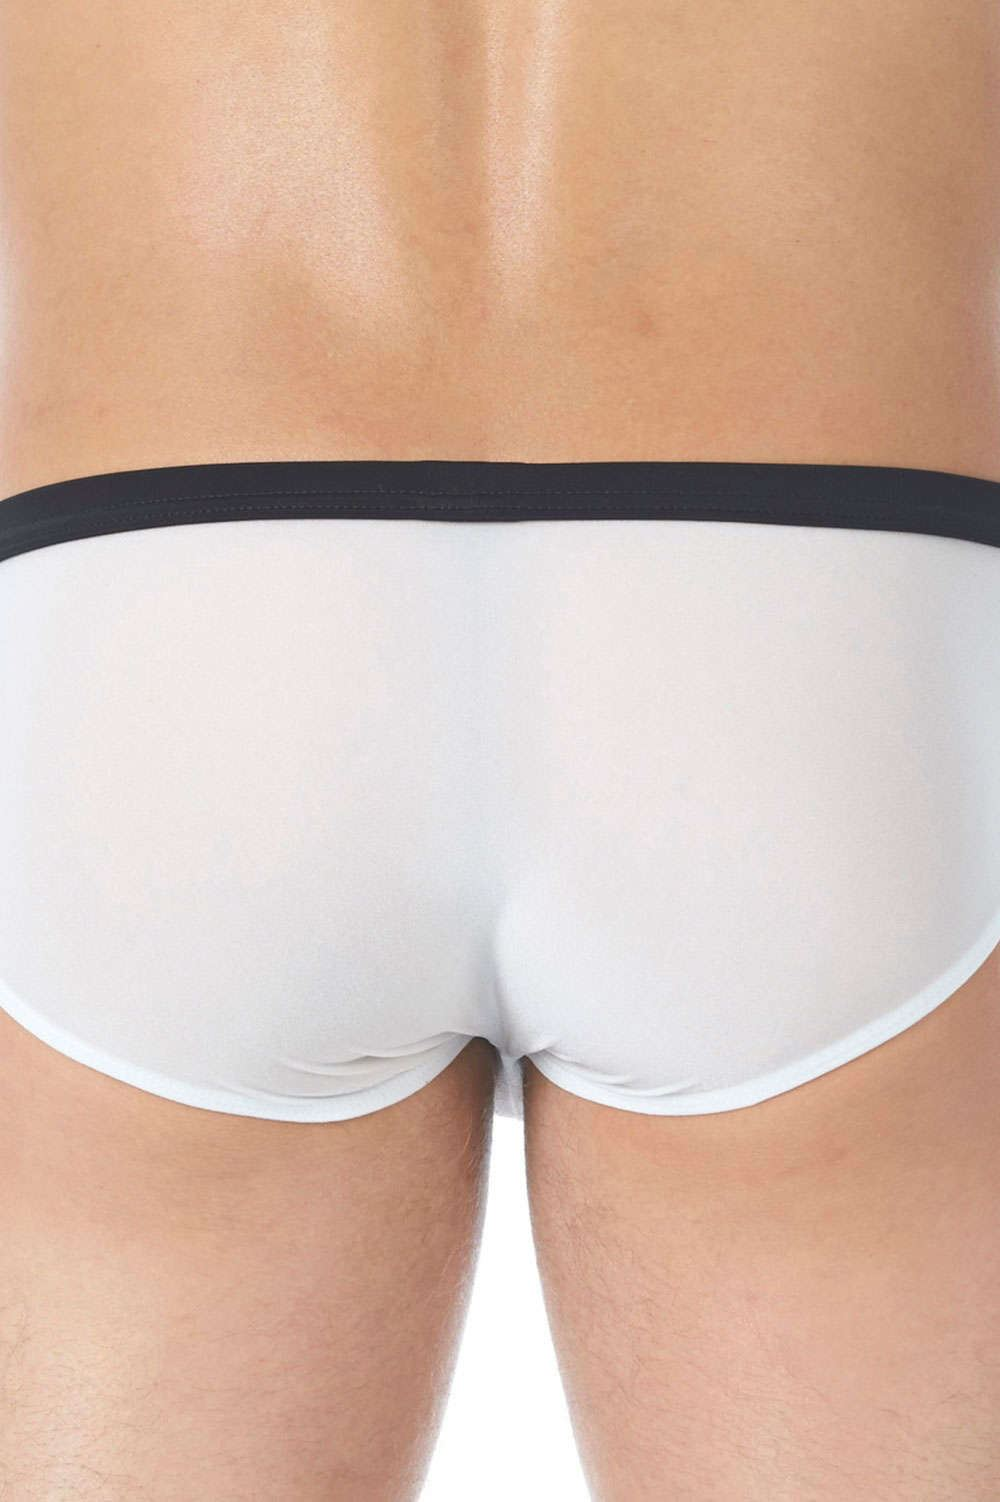 If you are looking for clearance Or discount on men's underwear, swimwear. We offer bikini, briefs, boxer, c-string, g-strings at discount prices.